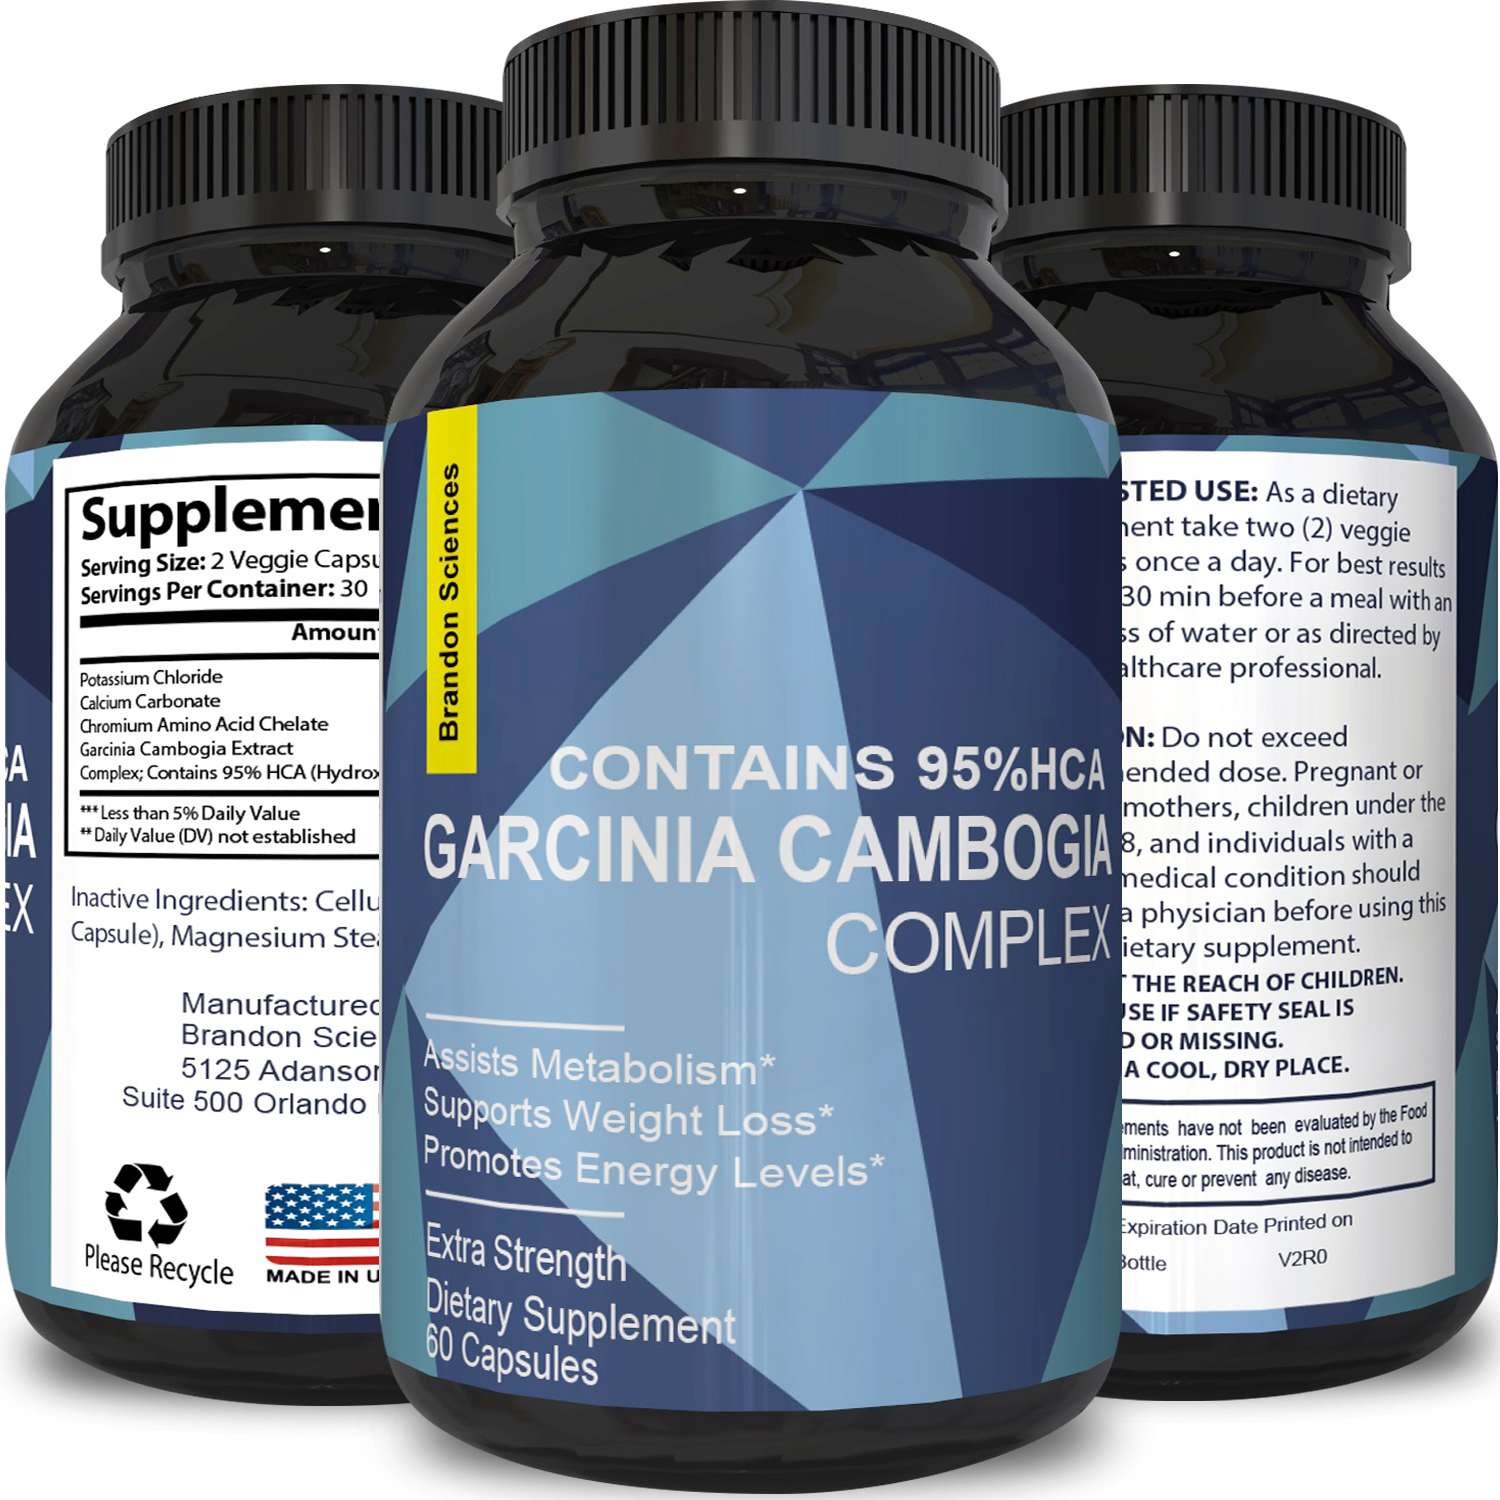 Biogreen Labs Nutritional Supplement Store Garcinia Cambogia 95 Hca Pure Extract Potent Natural Appetite Suppressant And Weight Loss For Women Men Gmp Certified Made In The Usa